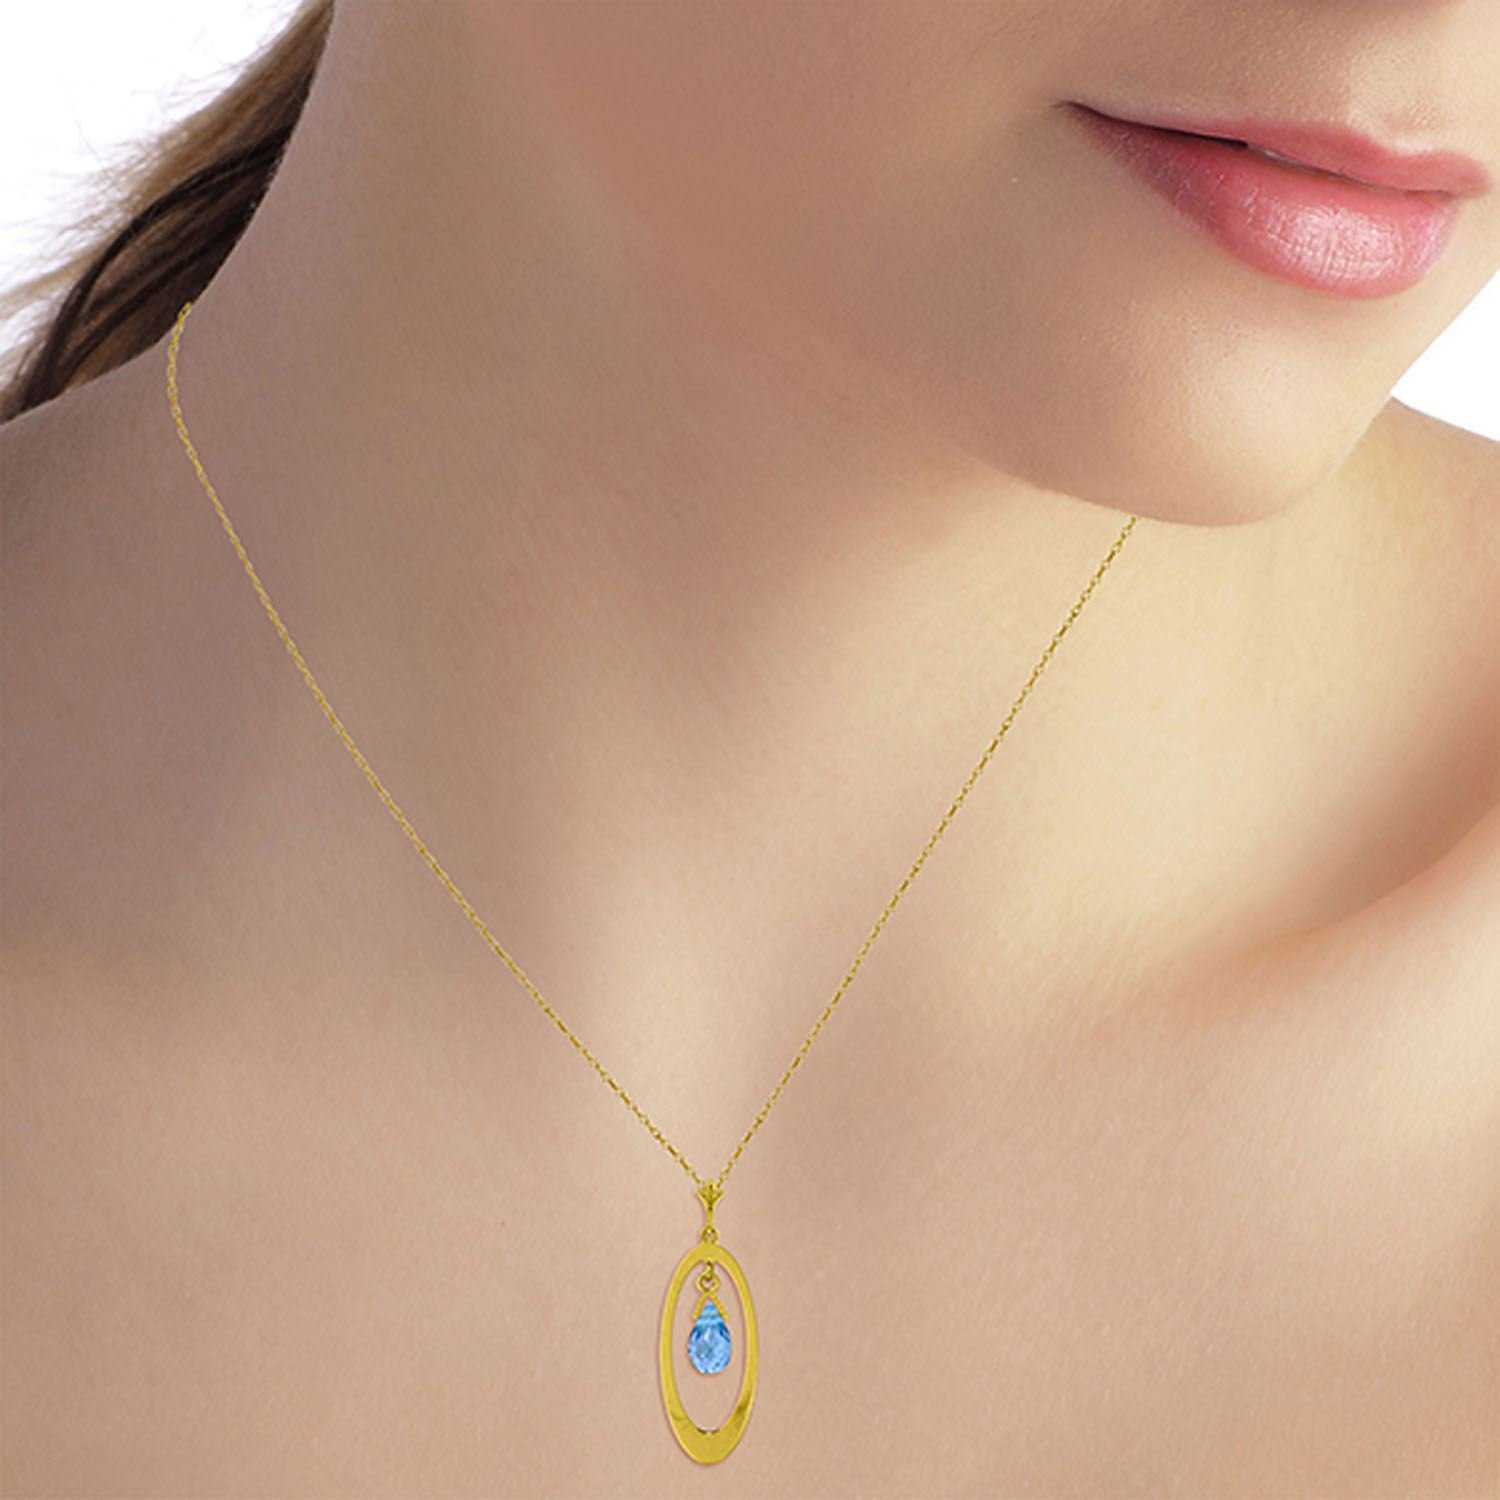 ALARRI 0.7 Carat 14K Solid Gold Hypnotize Blue Topaz Necklace with 24 Inch Chain Length